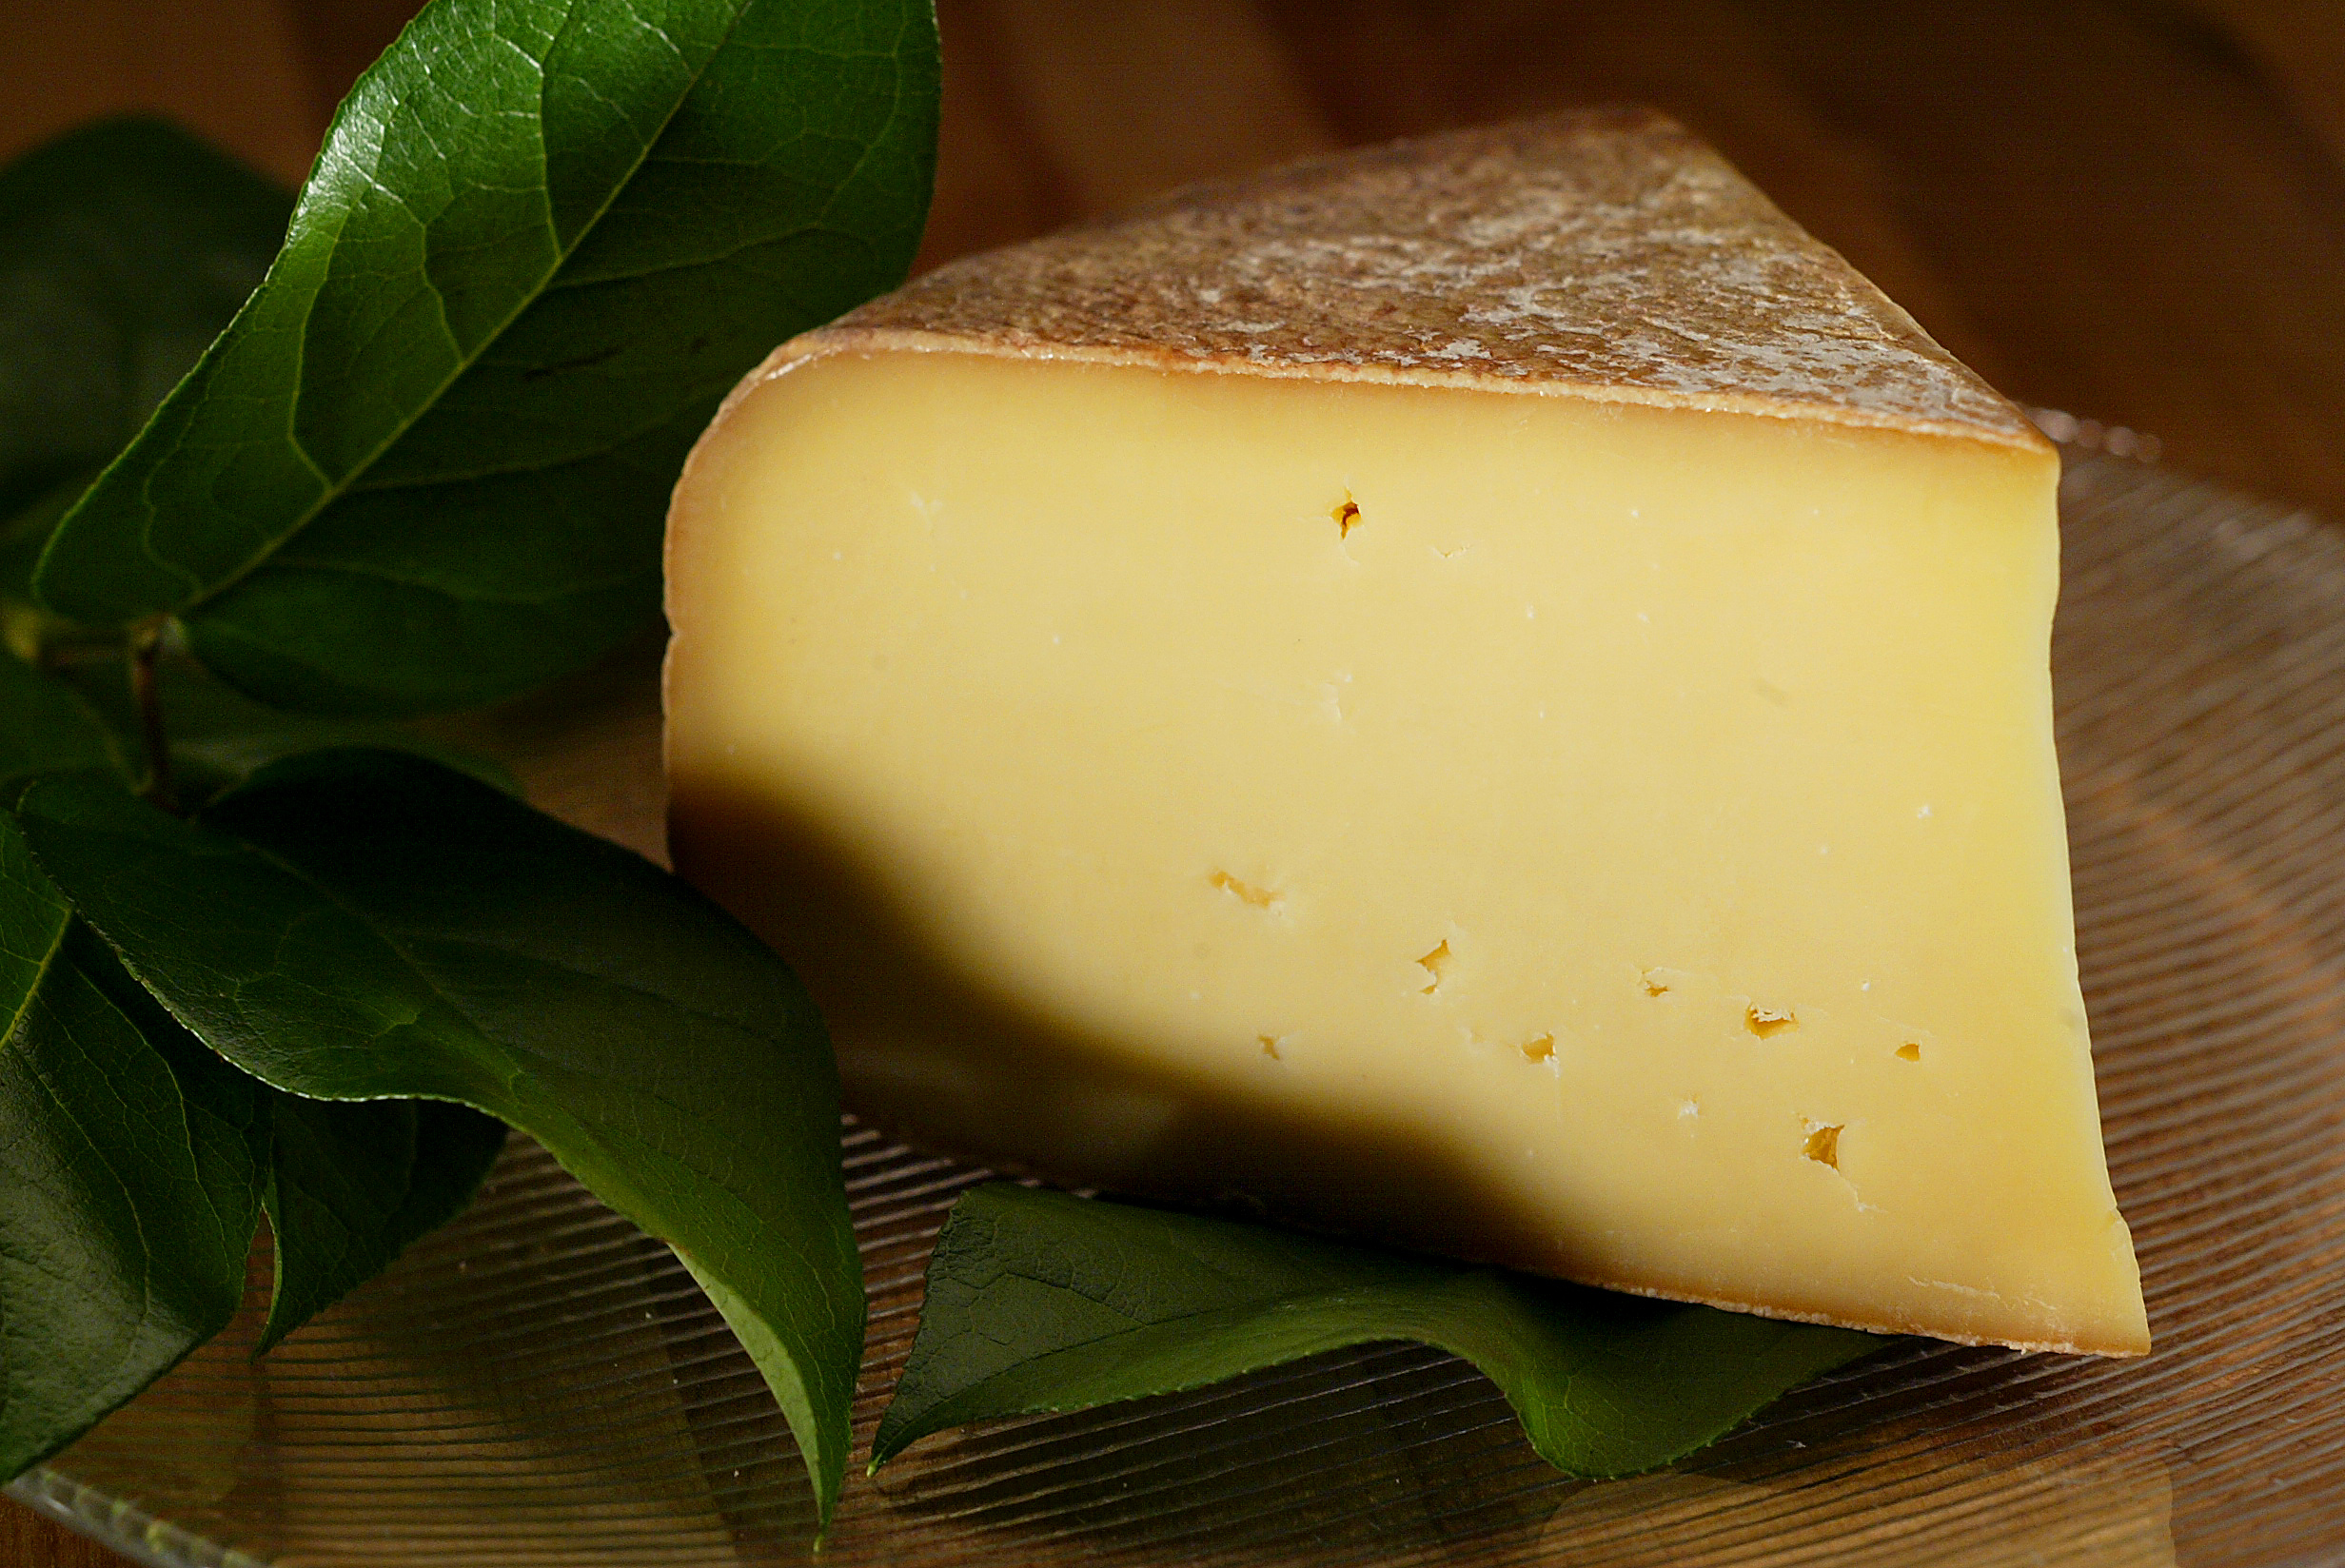 Stuff:Cheese Pleasant Ridge Reserve Cheese from Uplands Cheese Inc, Dodgeville, Wisconsin.